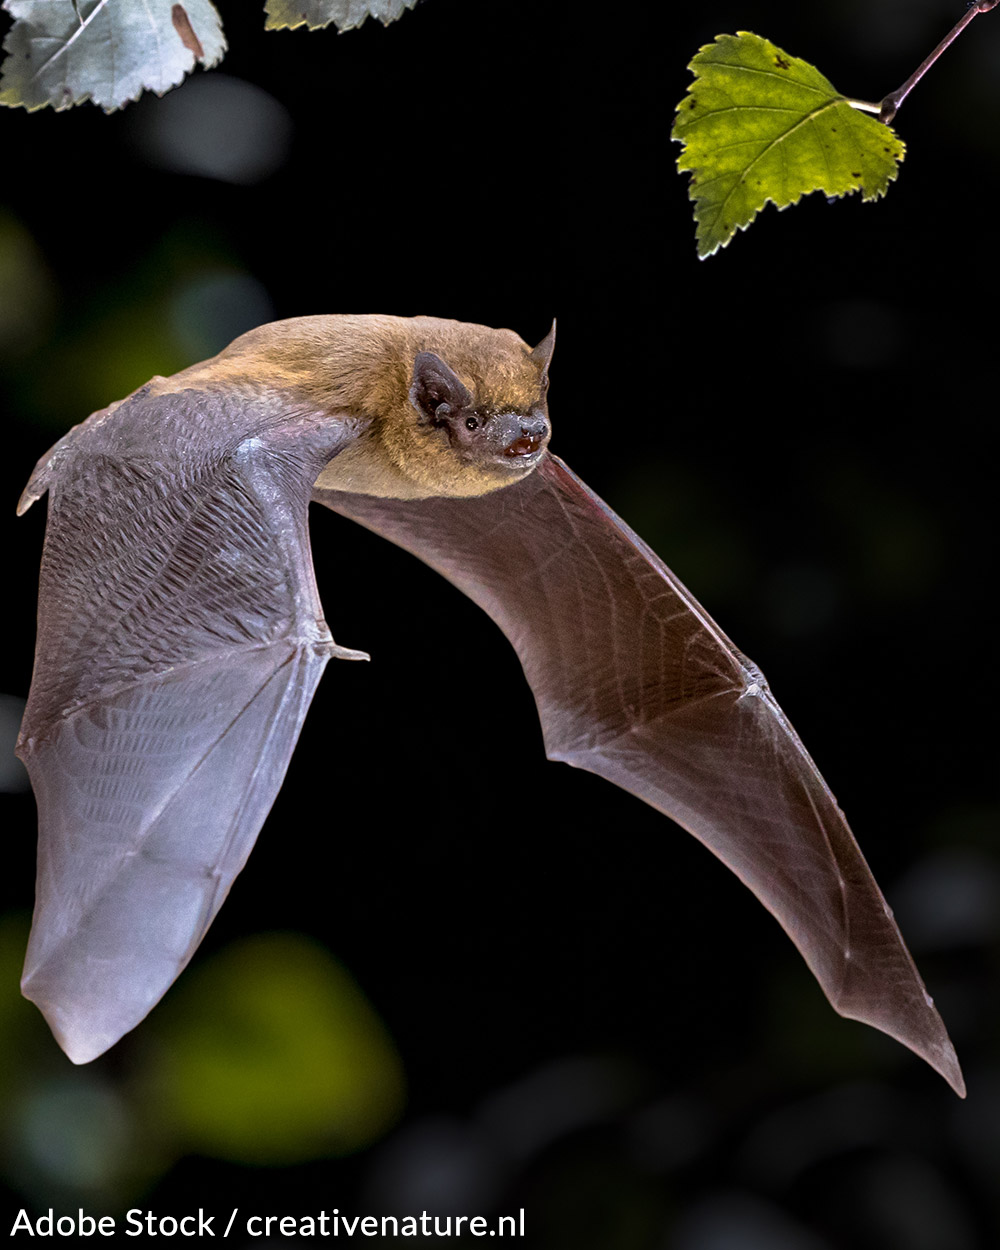 Bats are an essential, beneficial part of our ecosystem.